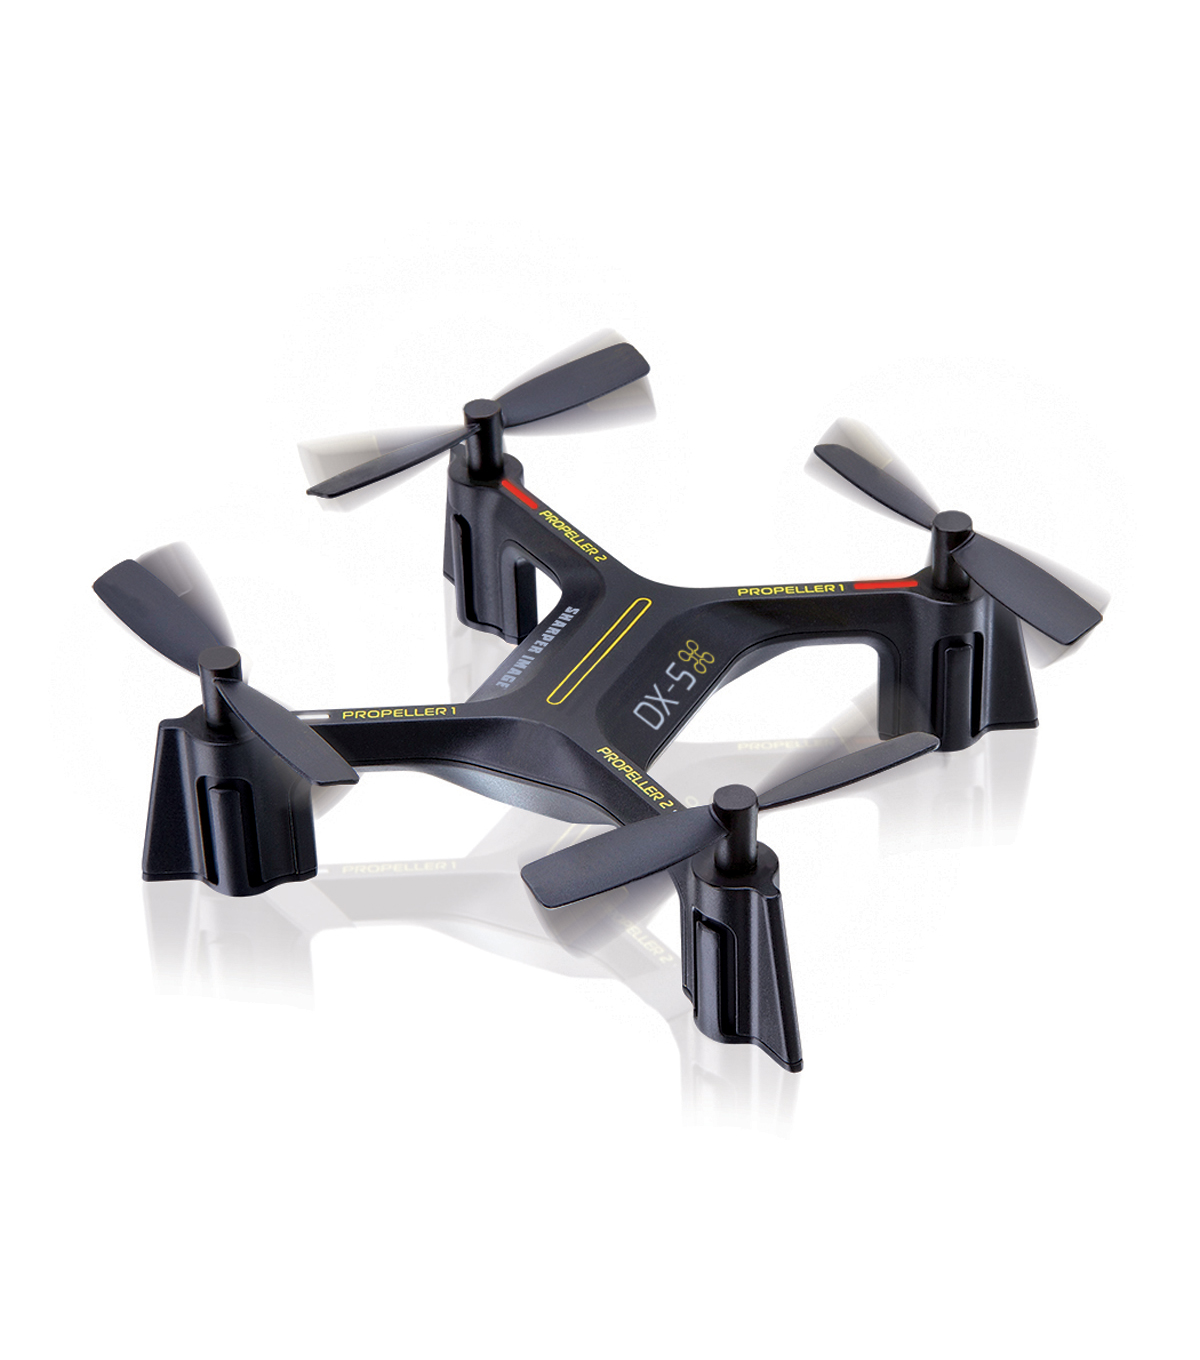 Sharper Image™ 10 in Drone Dx With Camera Streaming